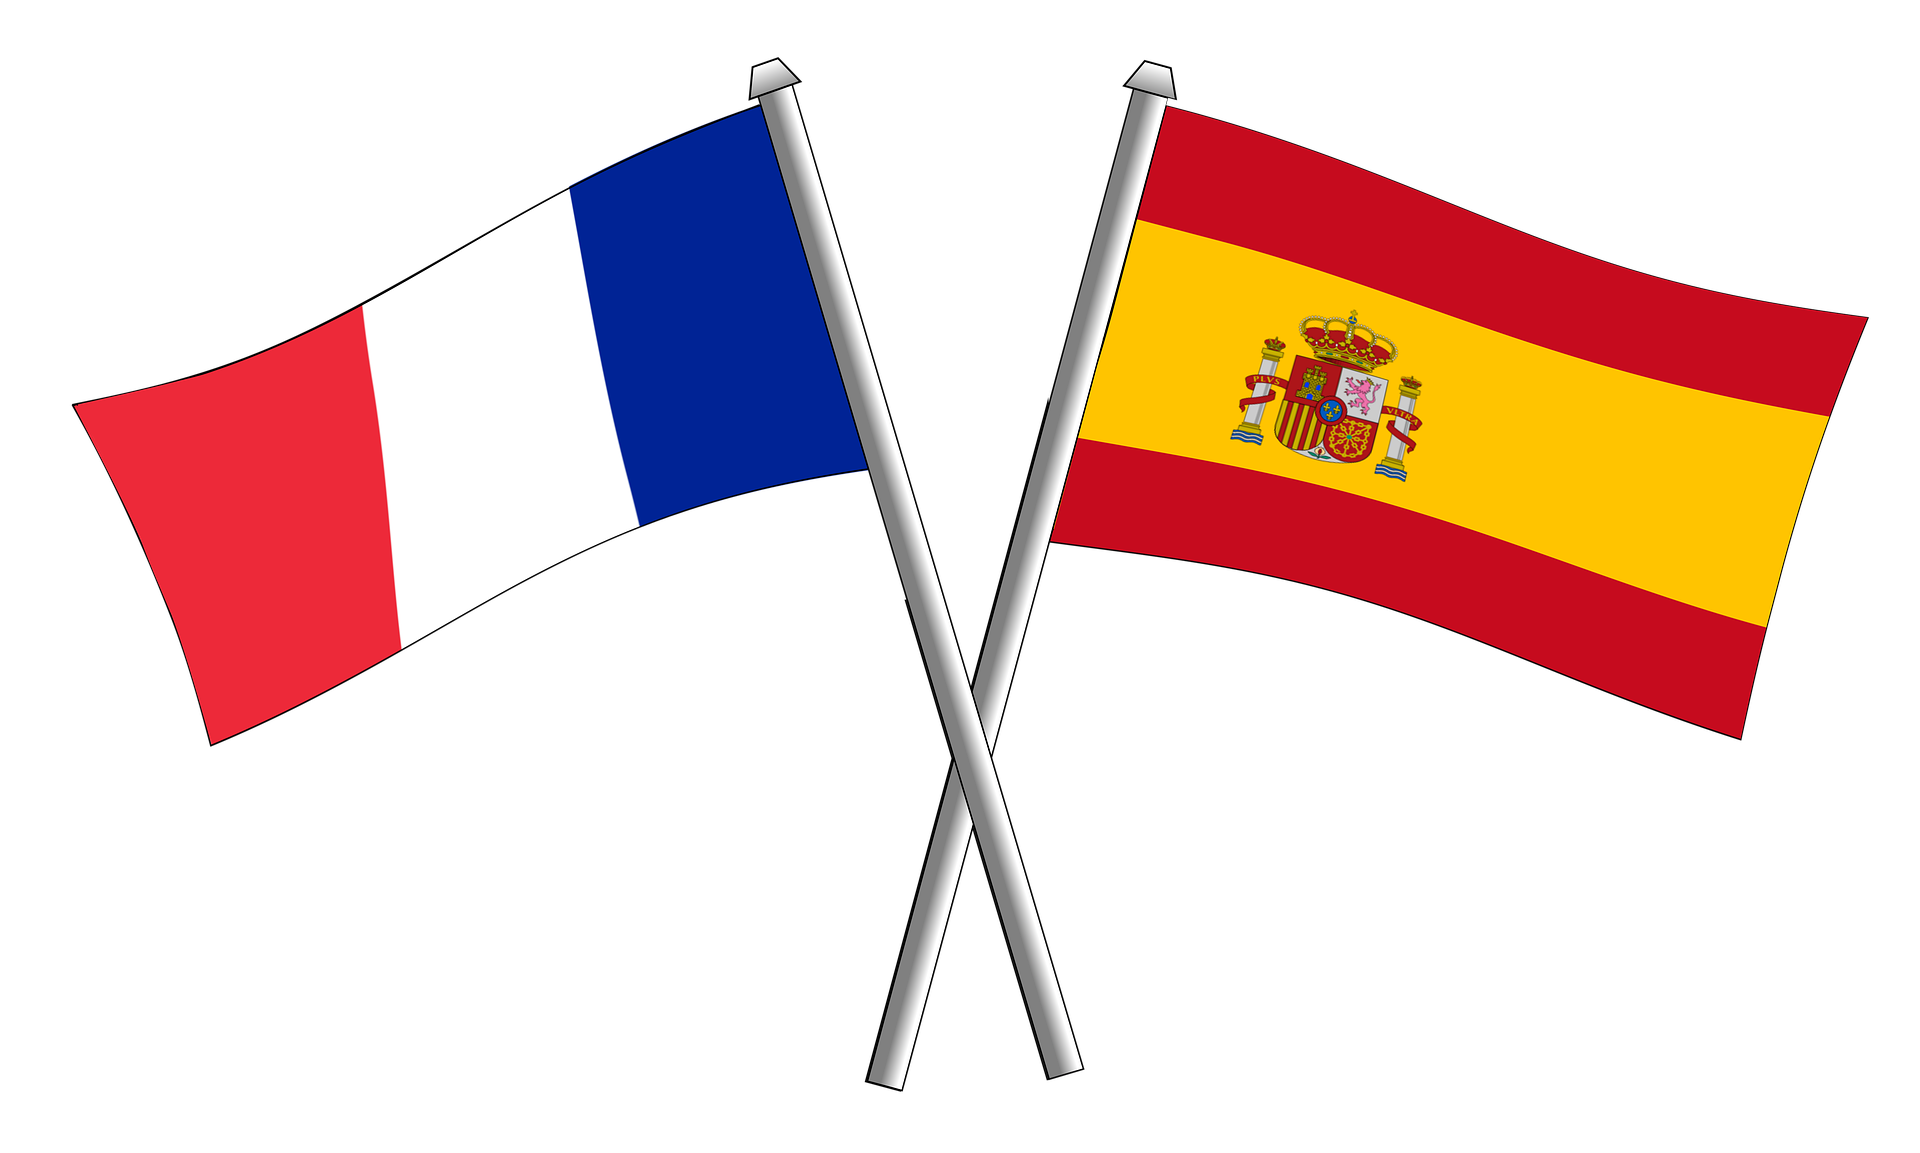 Spanish and French flags